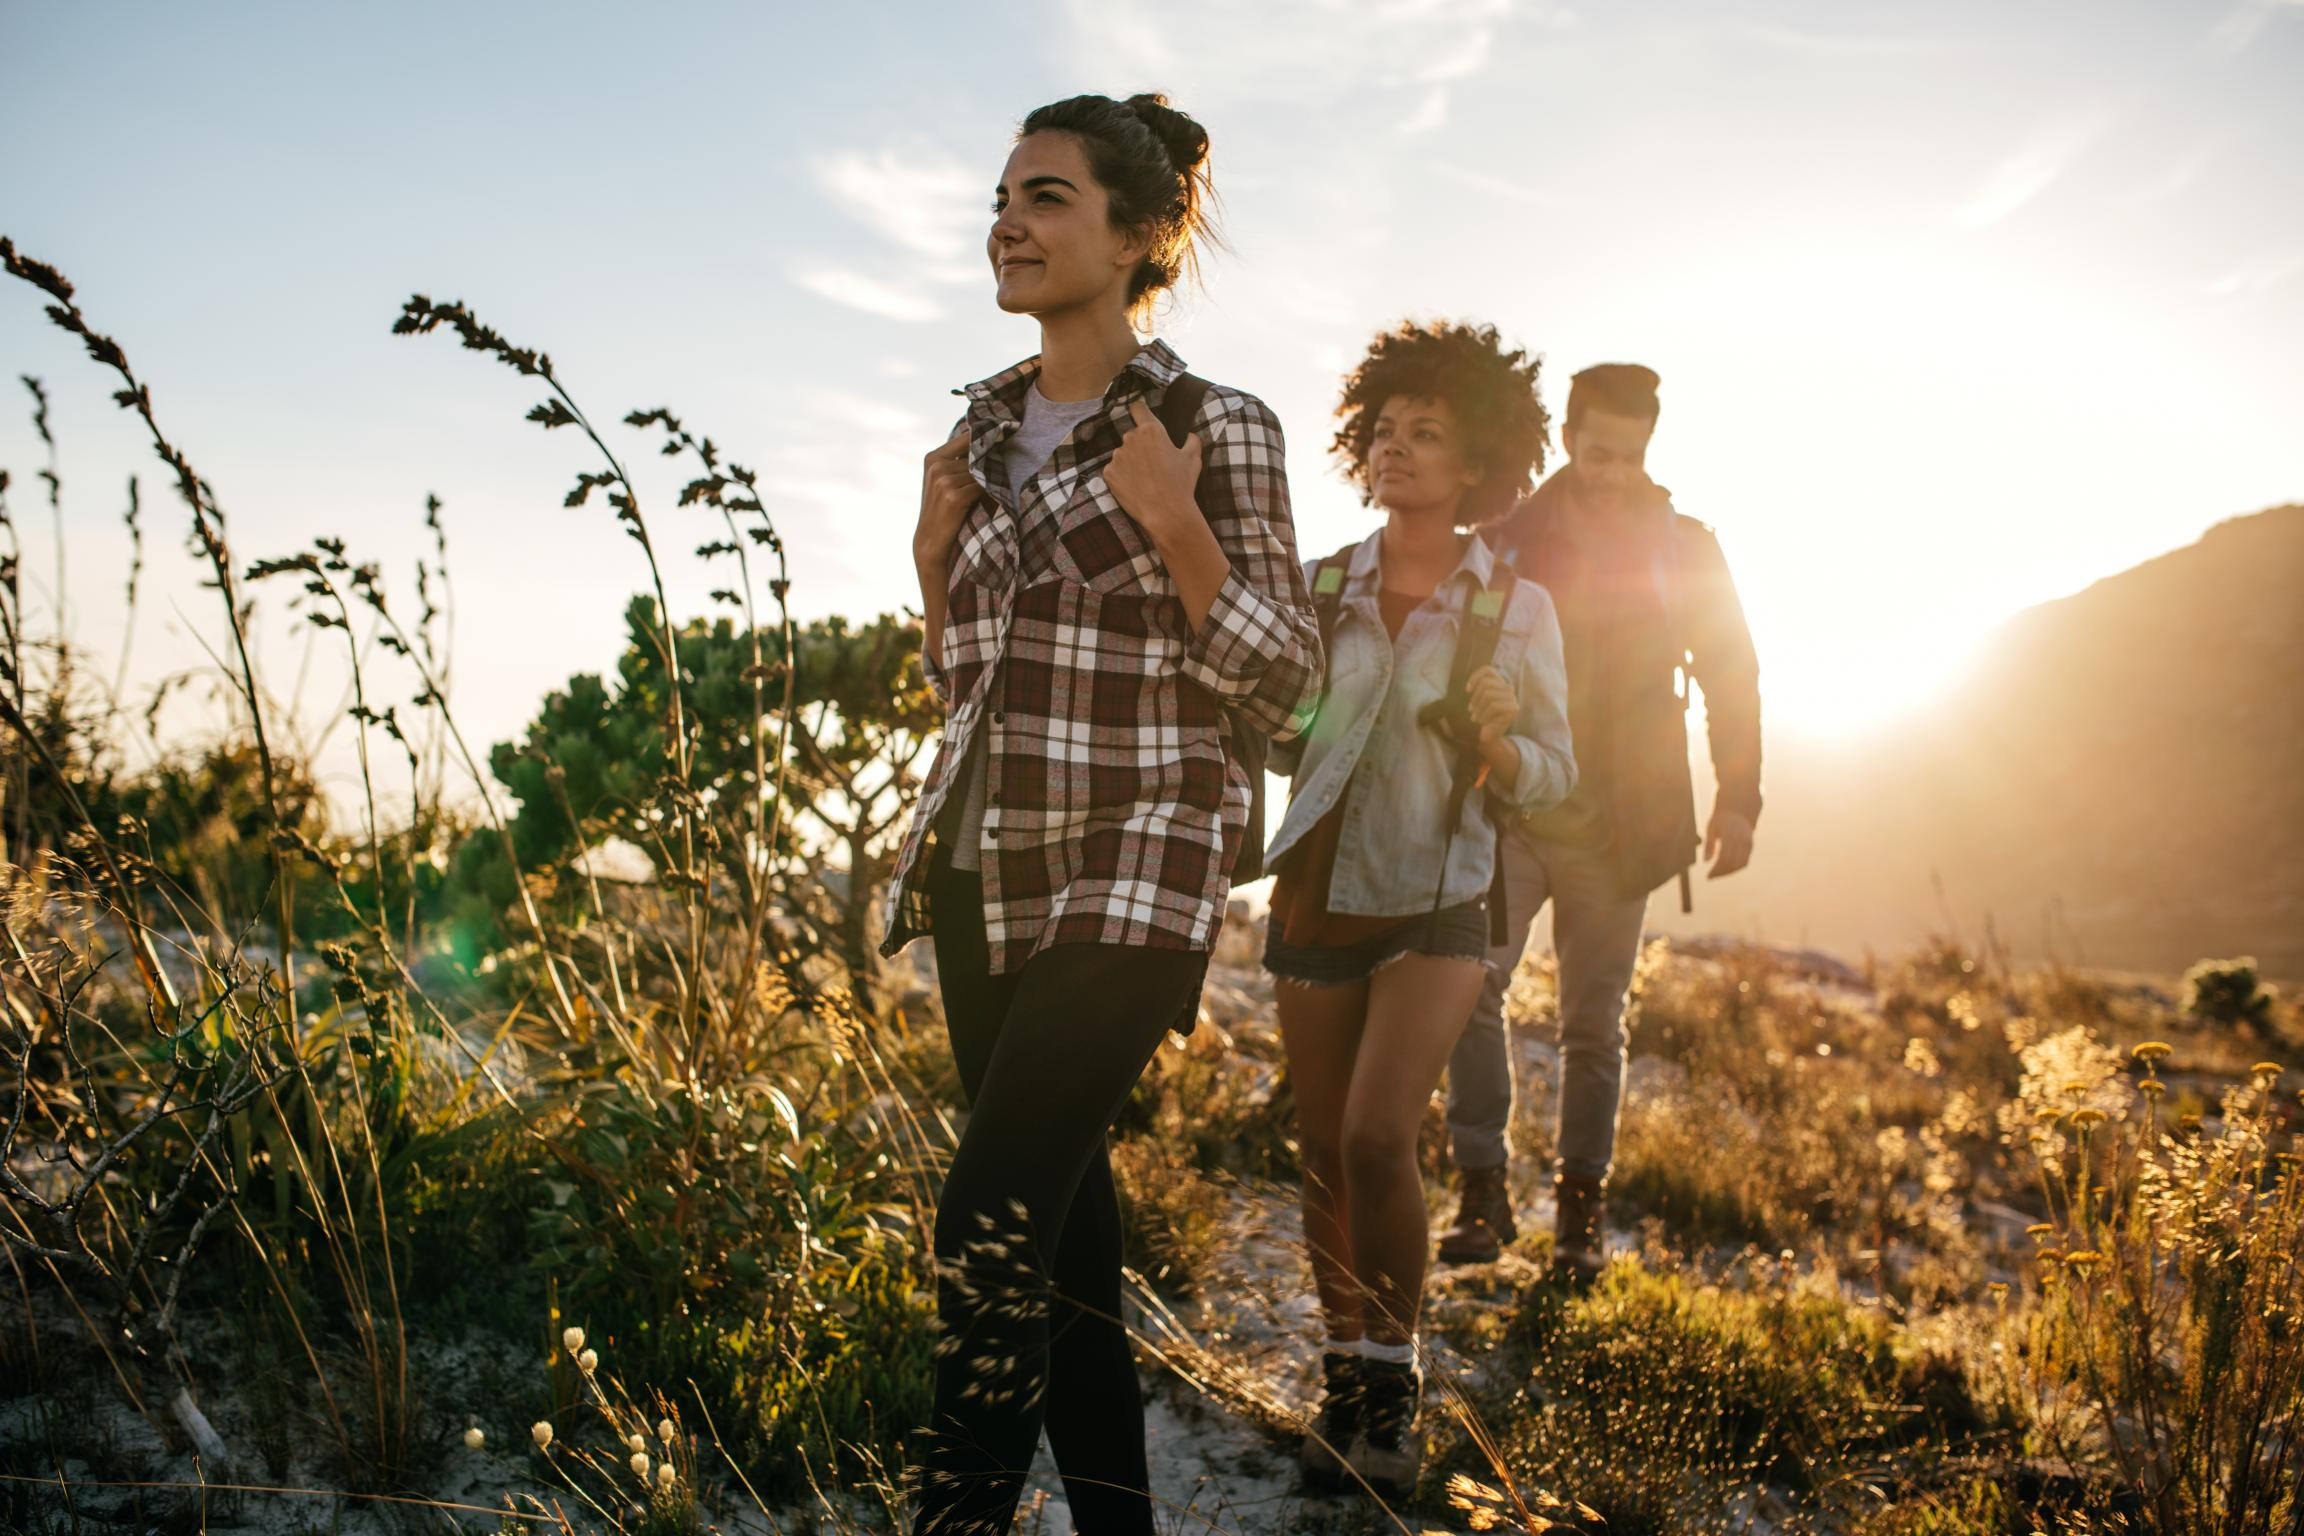 Group of young people hiking on a trail